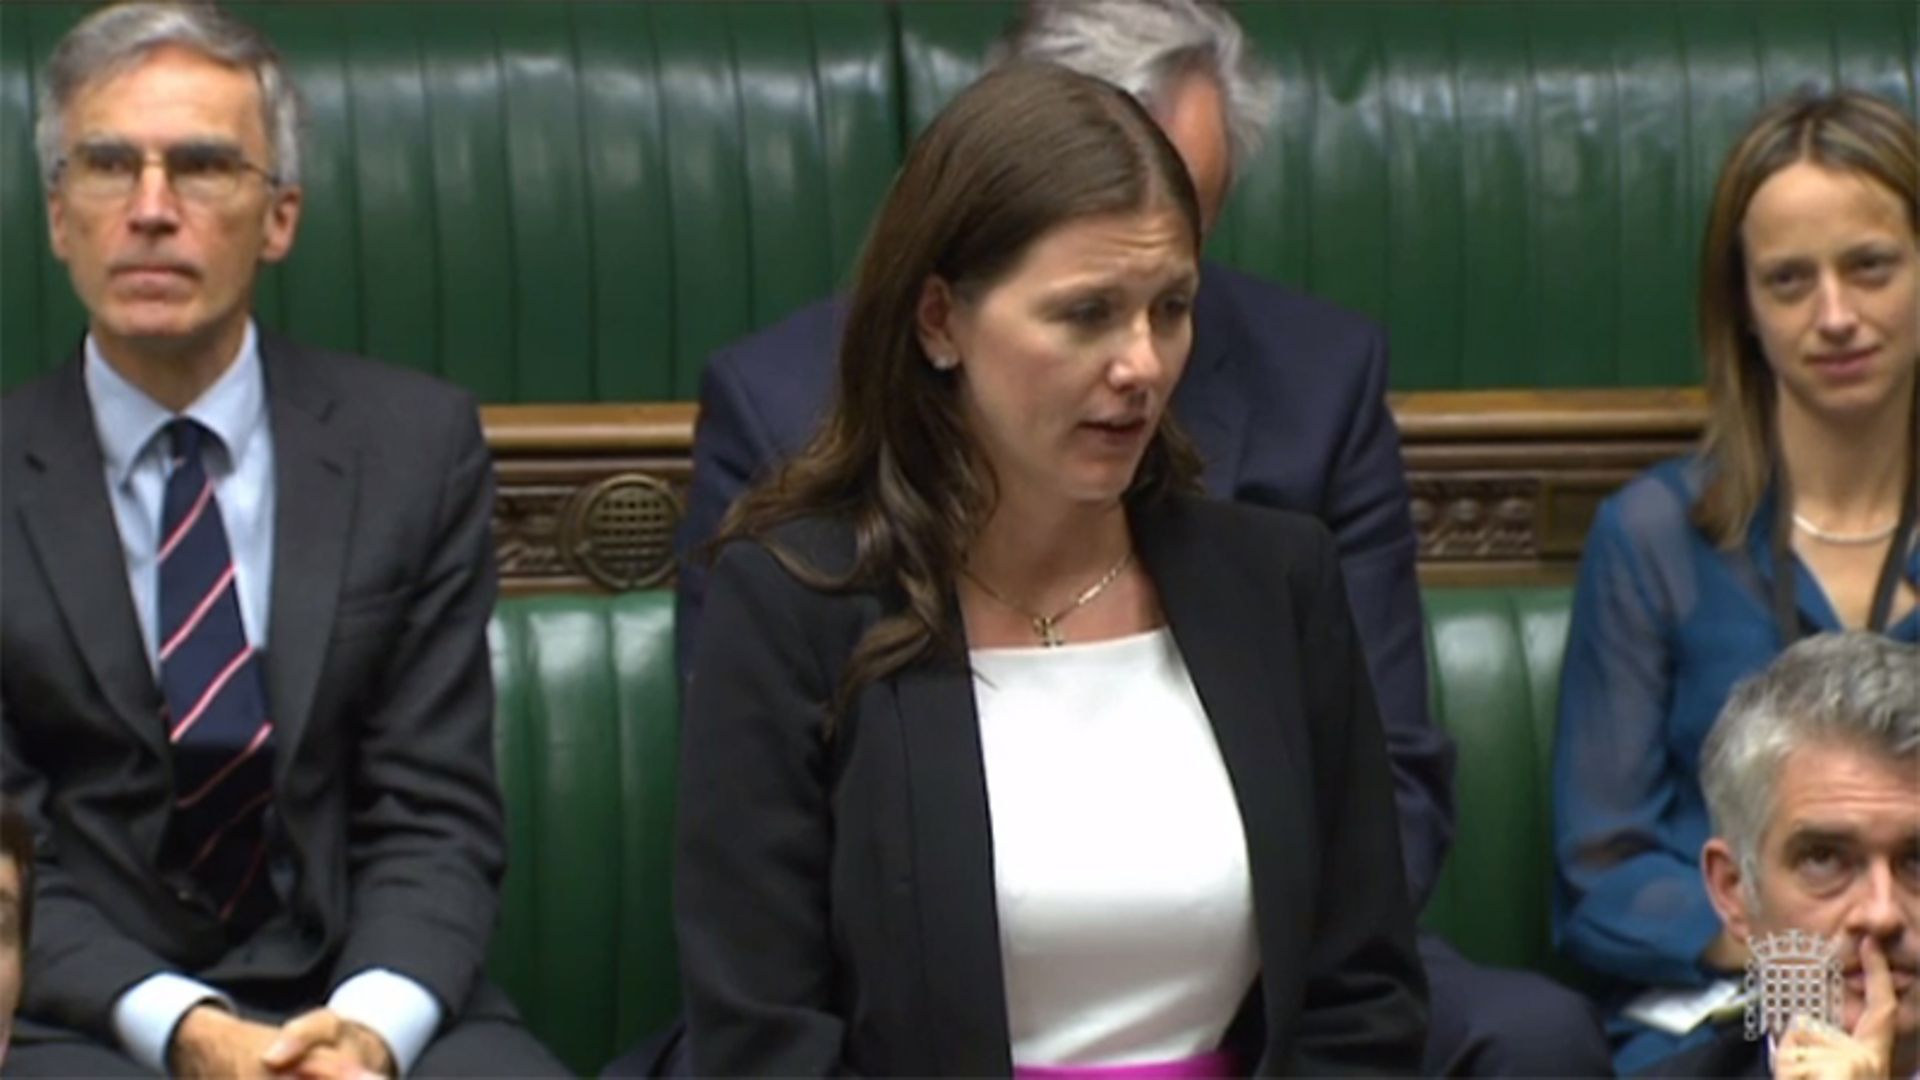 Michelle Donelan in the House of Commons - Credit: Parliament Live